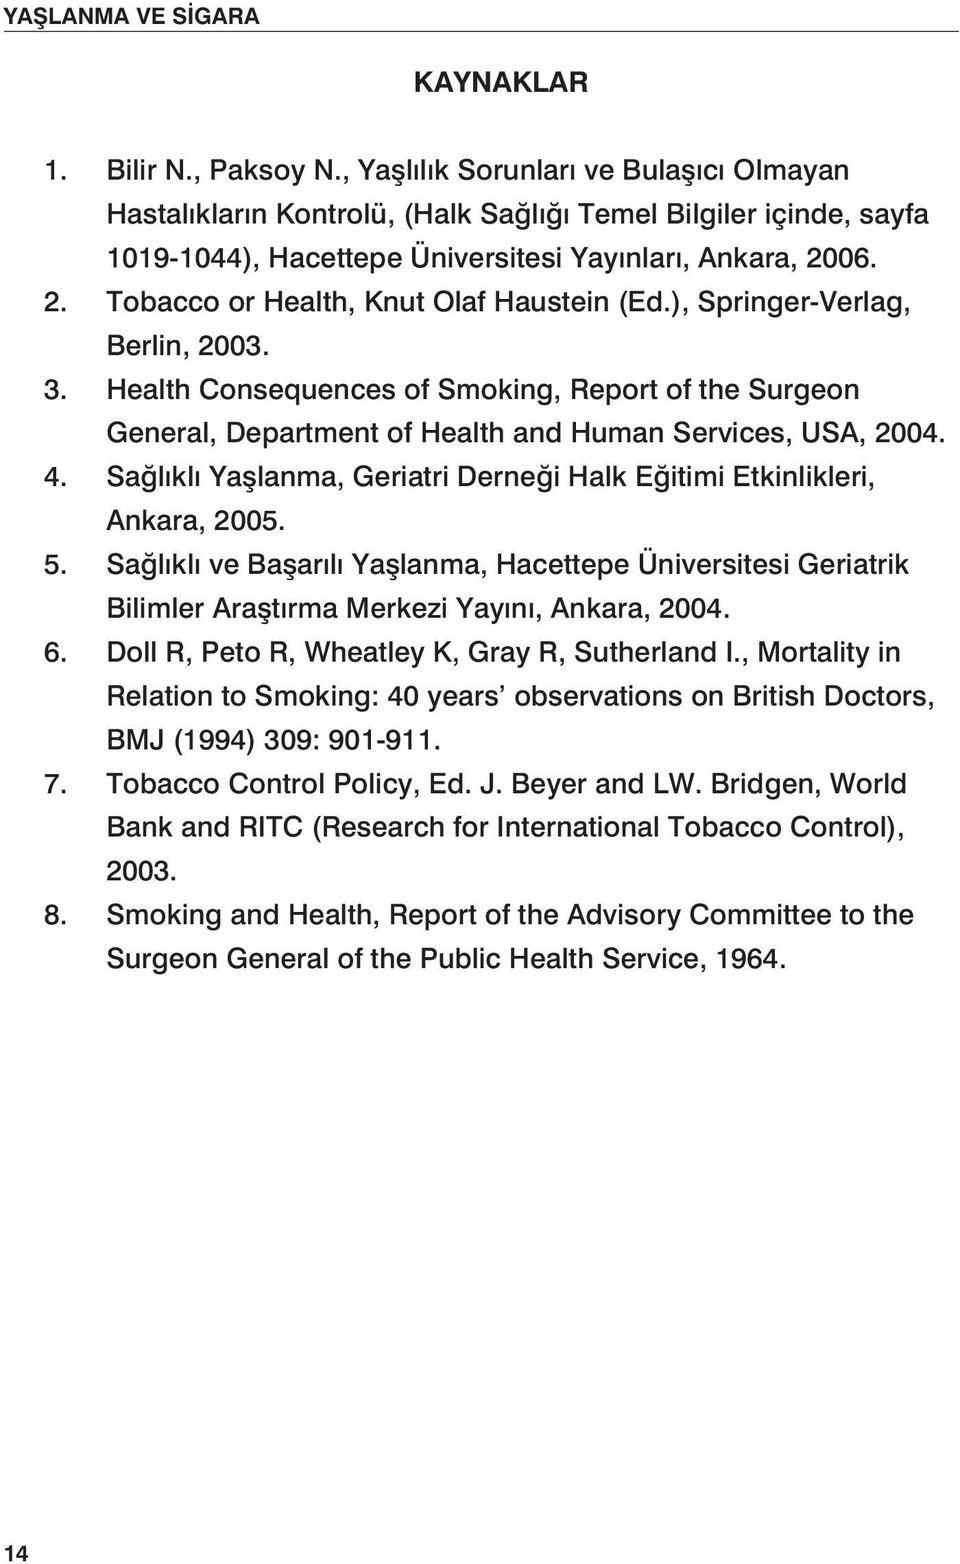 06. 2. Tobacco or Health, Knut Olaf Haustein (Ed.), Springer-Verlag, Berlin, 2003. 3. Health Consequences of Smoking, Report of the Surgeon General, Department of Health and Human Services, USA, 2004.